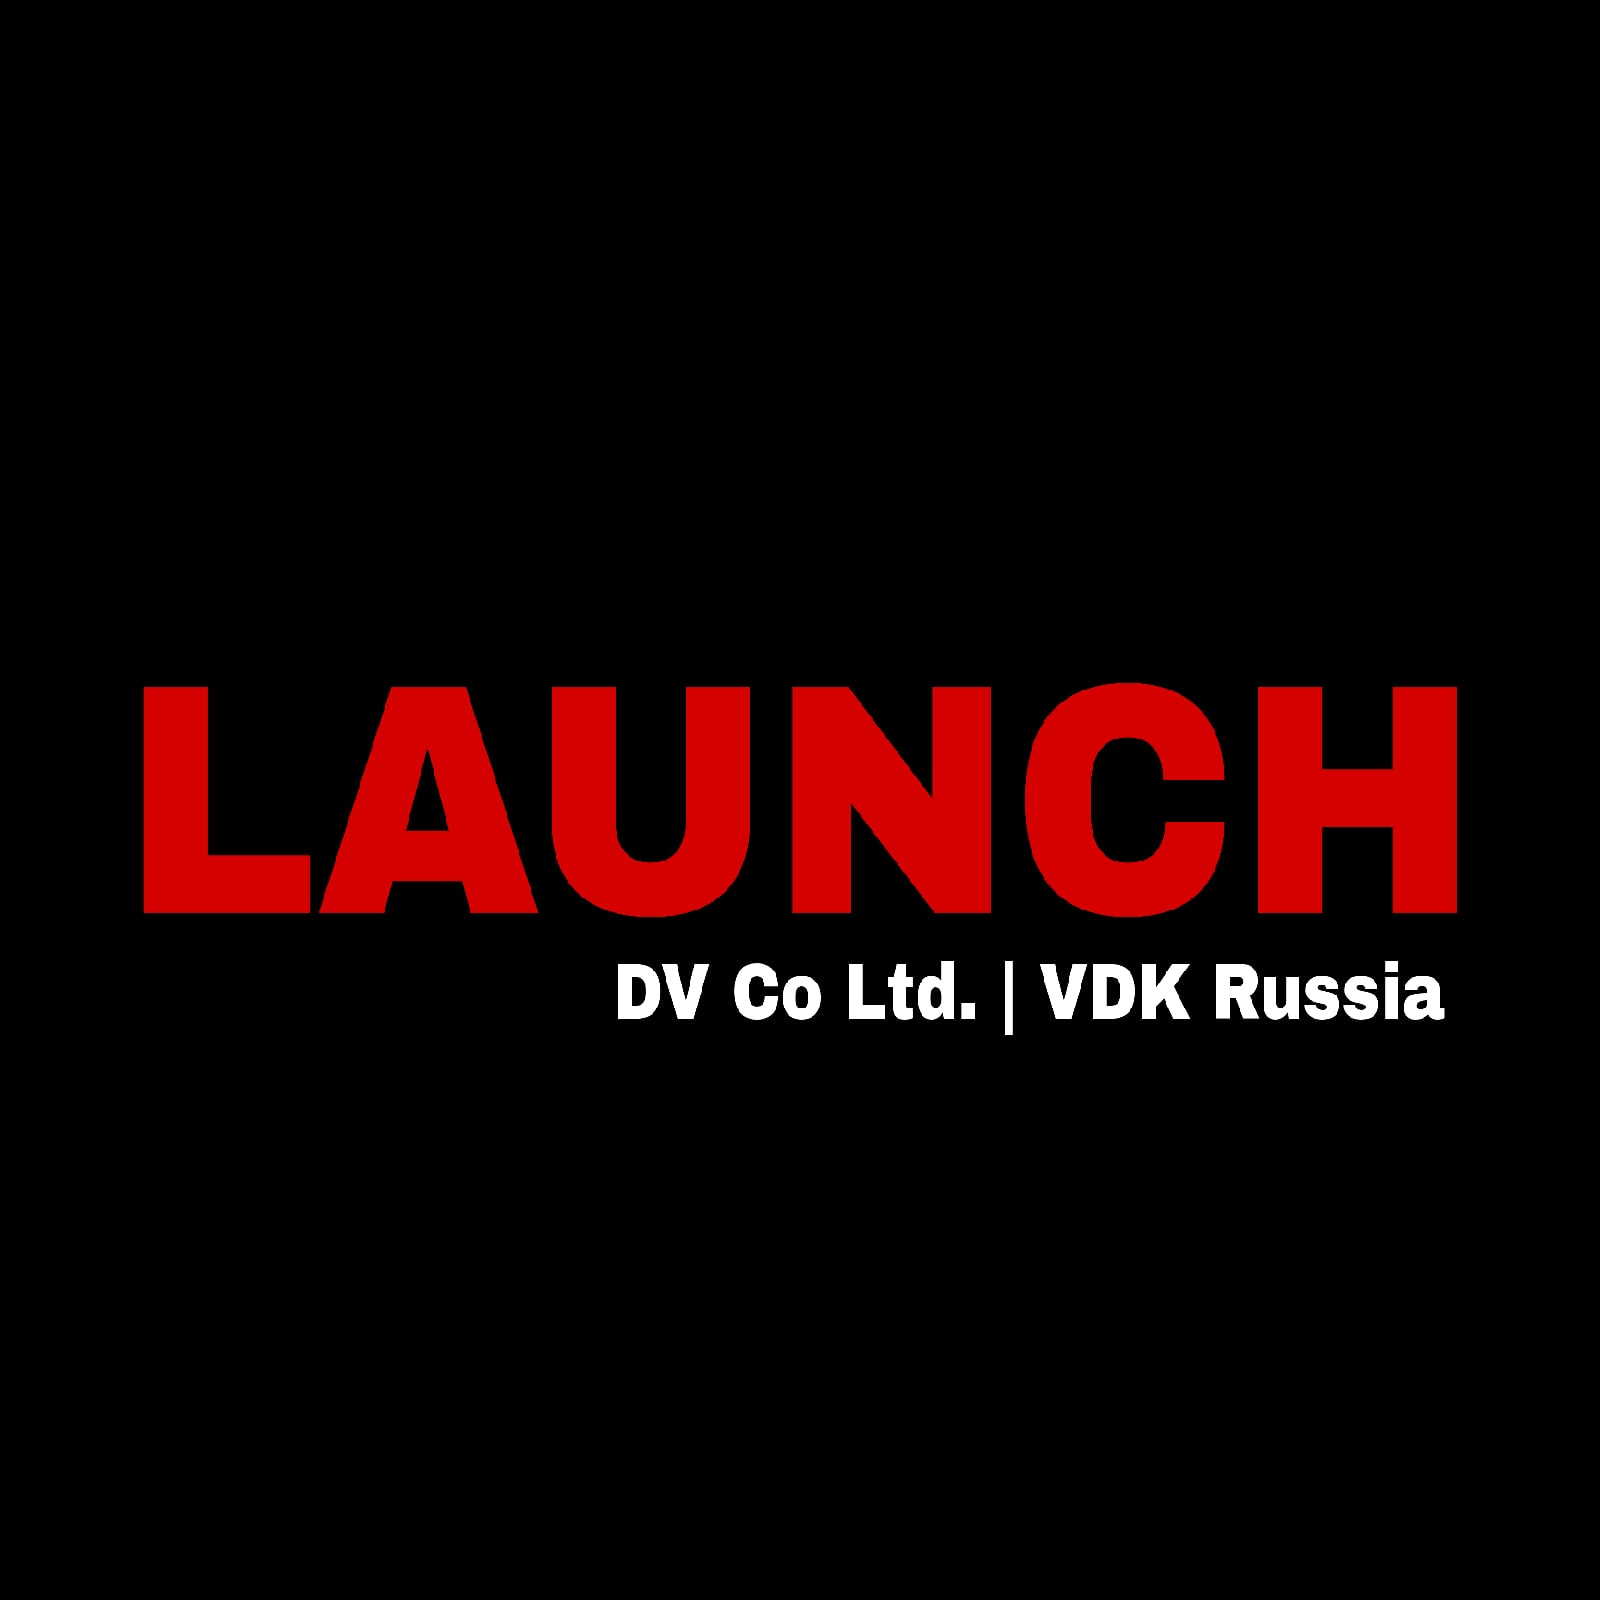 launch.dv